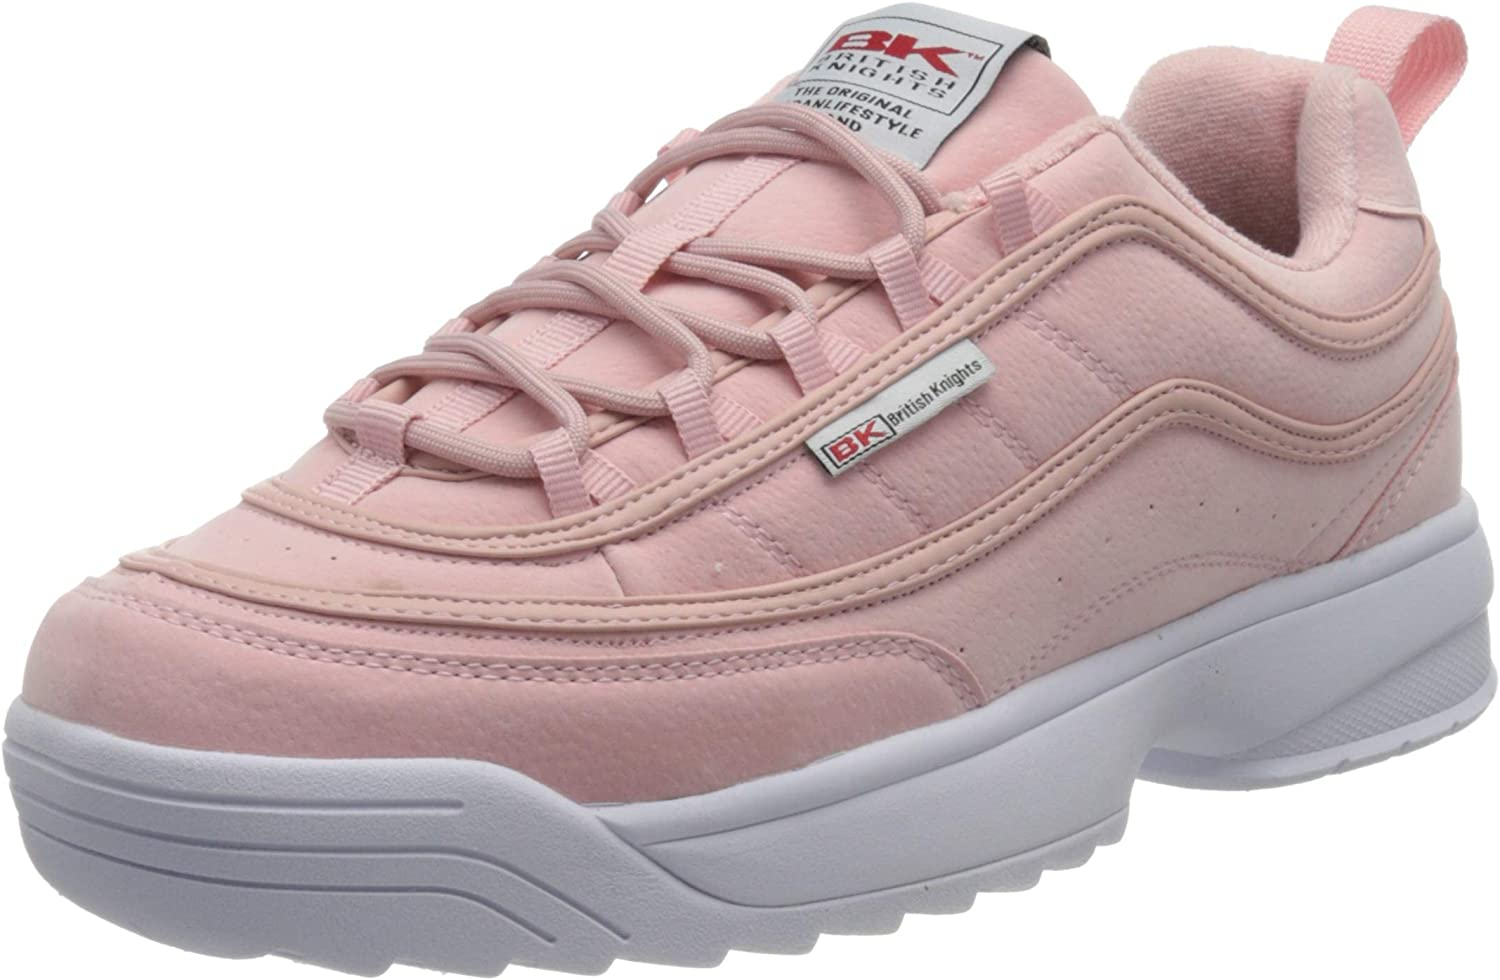 British Discount is also underway Knights Women's Low-top New color Sneakers